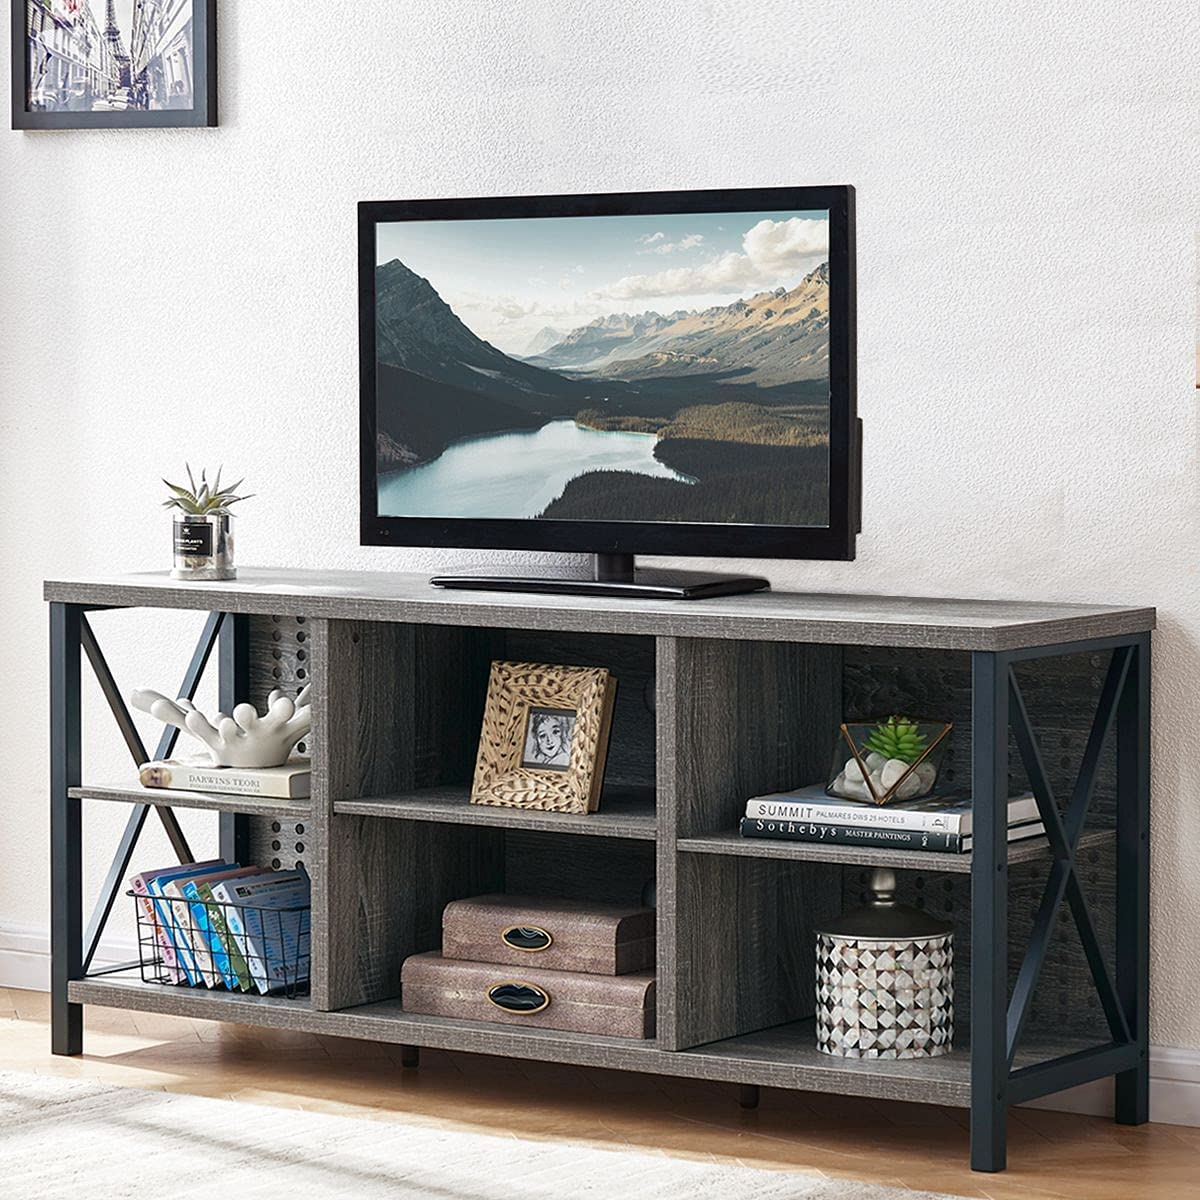 LVB TV Stand for 65 Inch TV, Farmhouse Wood Entertainment Center with Storage Shelves for Bedroom, Mid Century Modern Rustic Industrial TV Console Table for Living Room Home, Gray Oak, 55 Inch